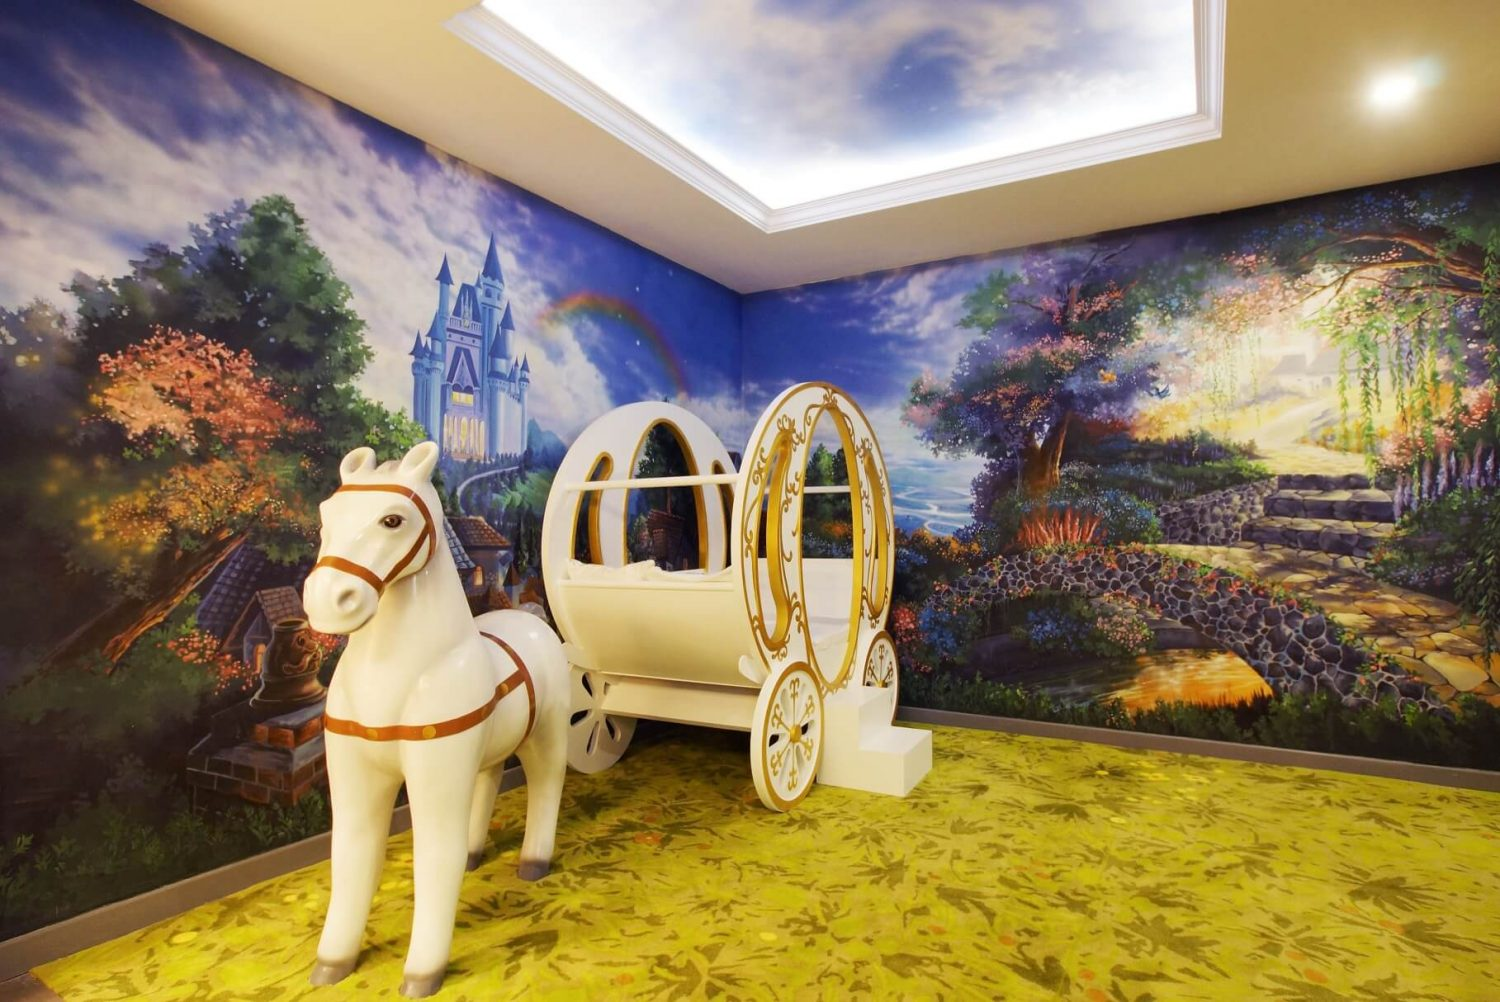 Hotel Maison Boutique Executive Suite Fairy Tale Room